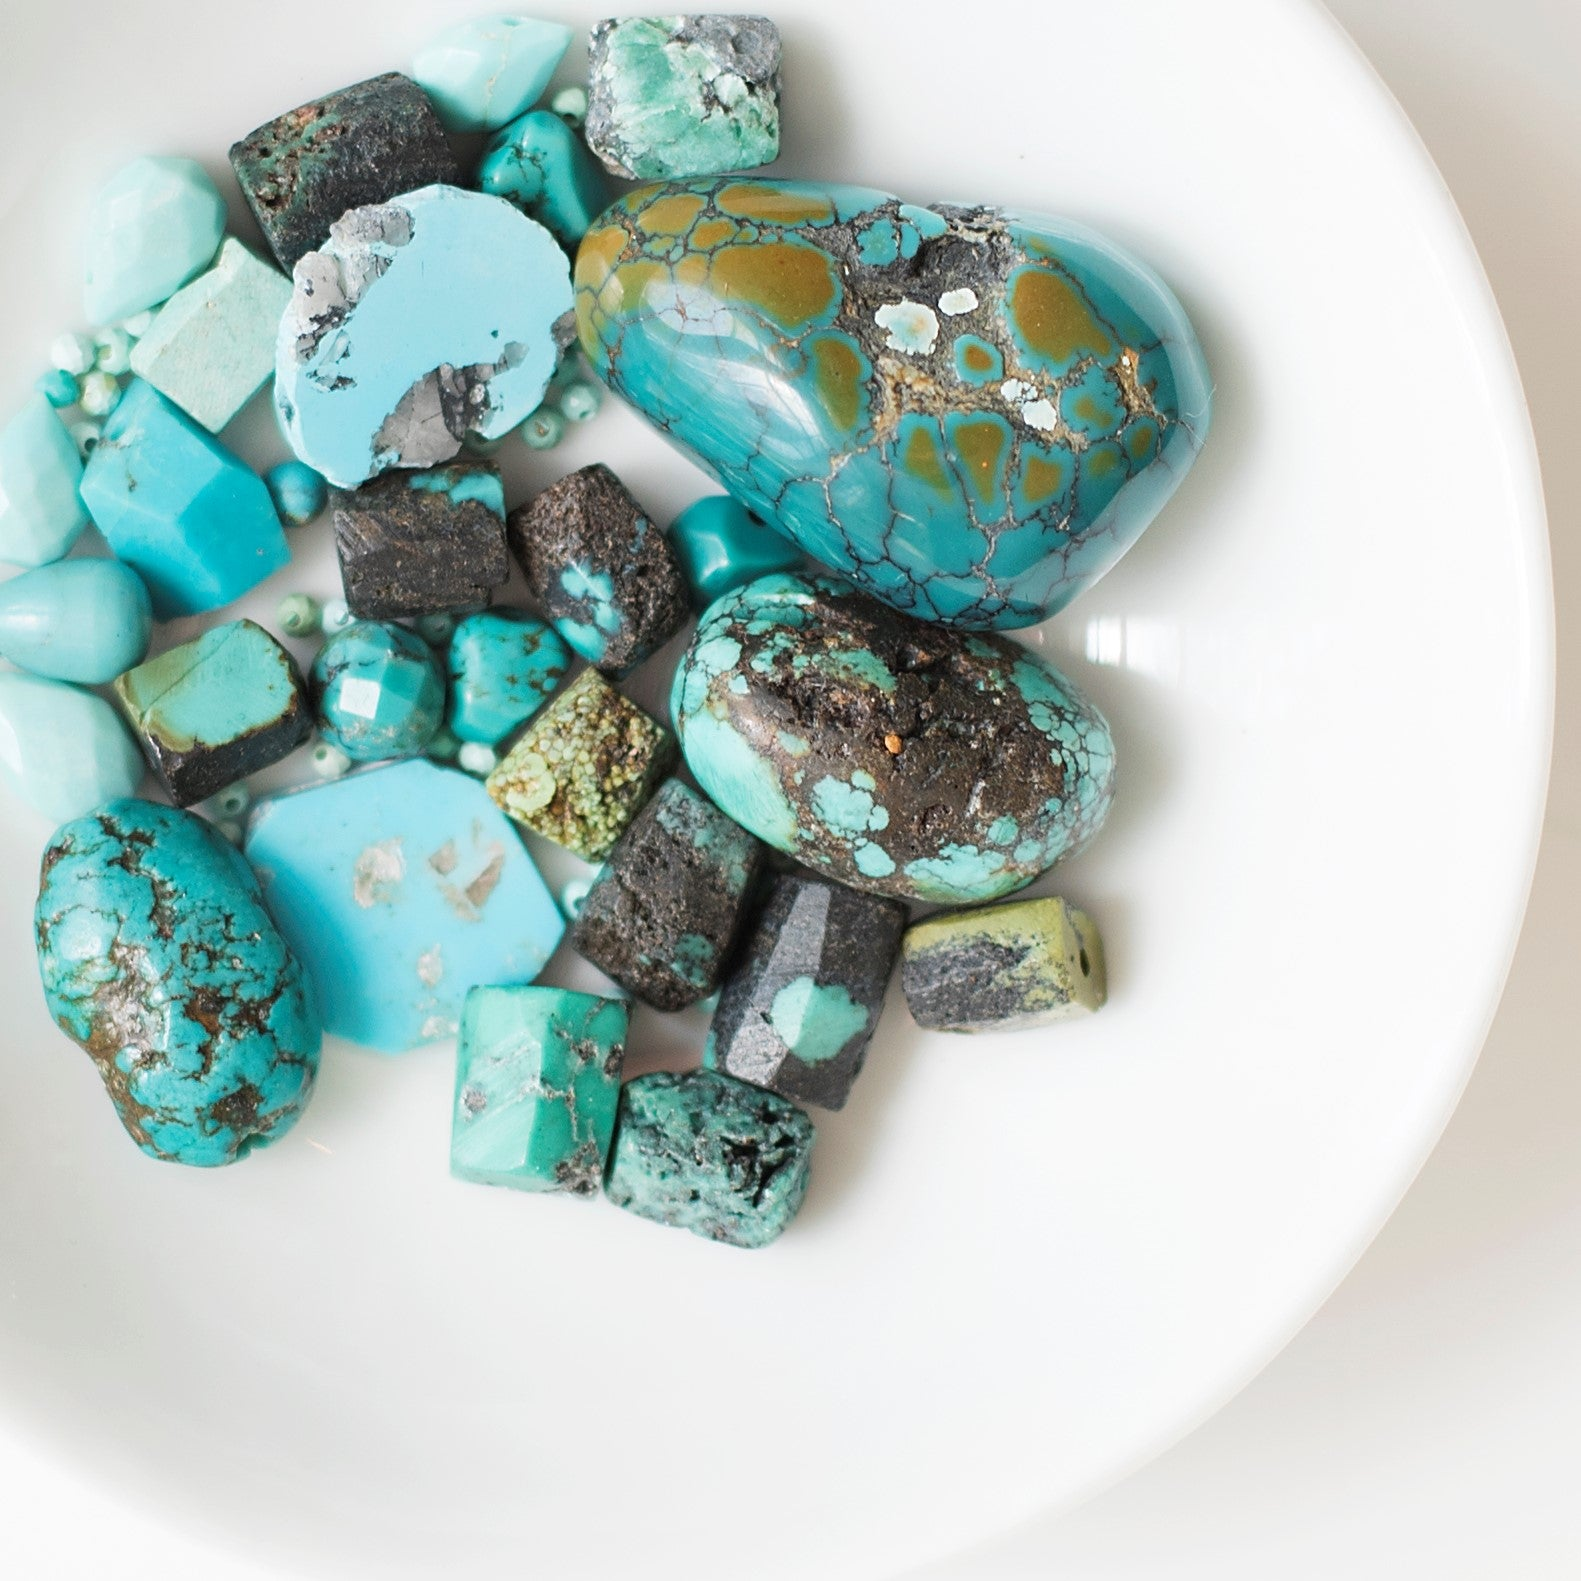 Turquoise Treasured by virtually every ancient culture, turquoise remains highly sought after for its vivid color, rich historical significance, and famed healing properties. Protection and luck are two qualities said to be imparted by turquoise, and many